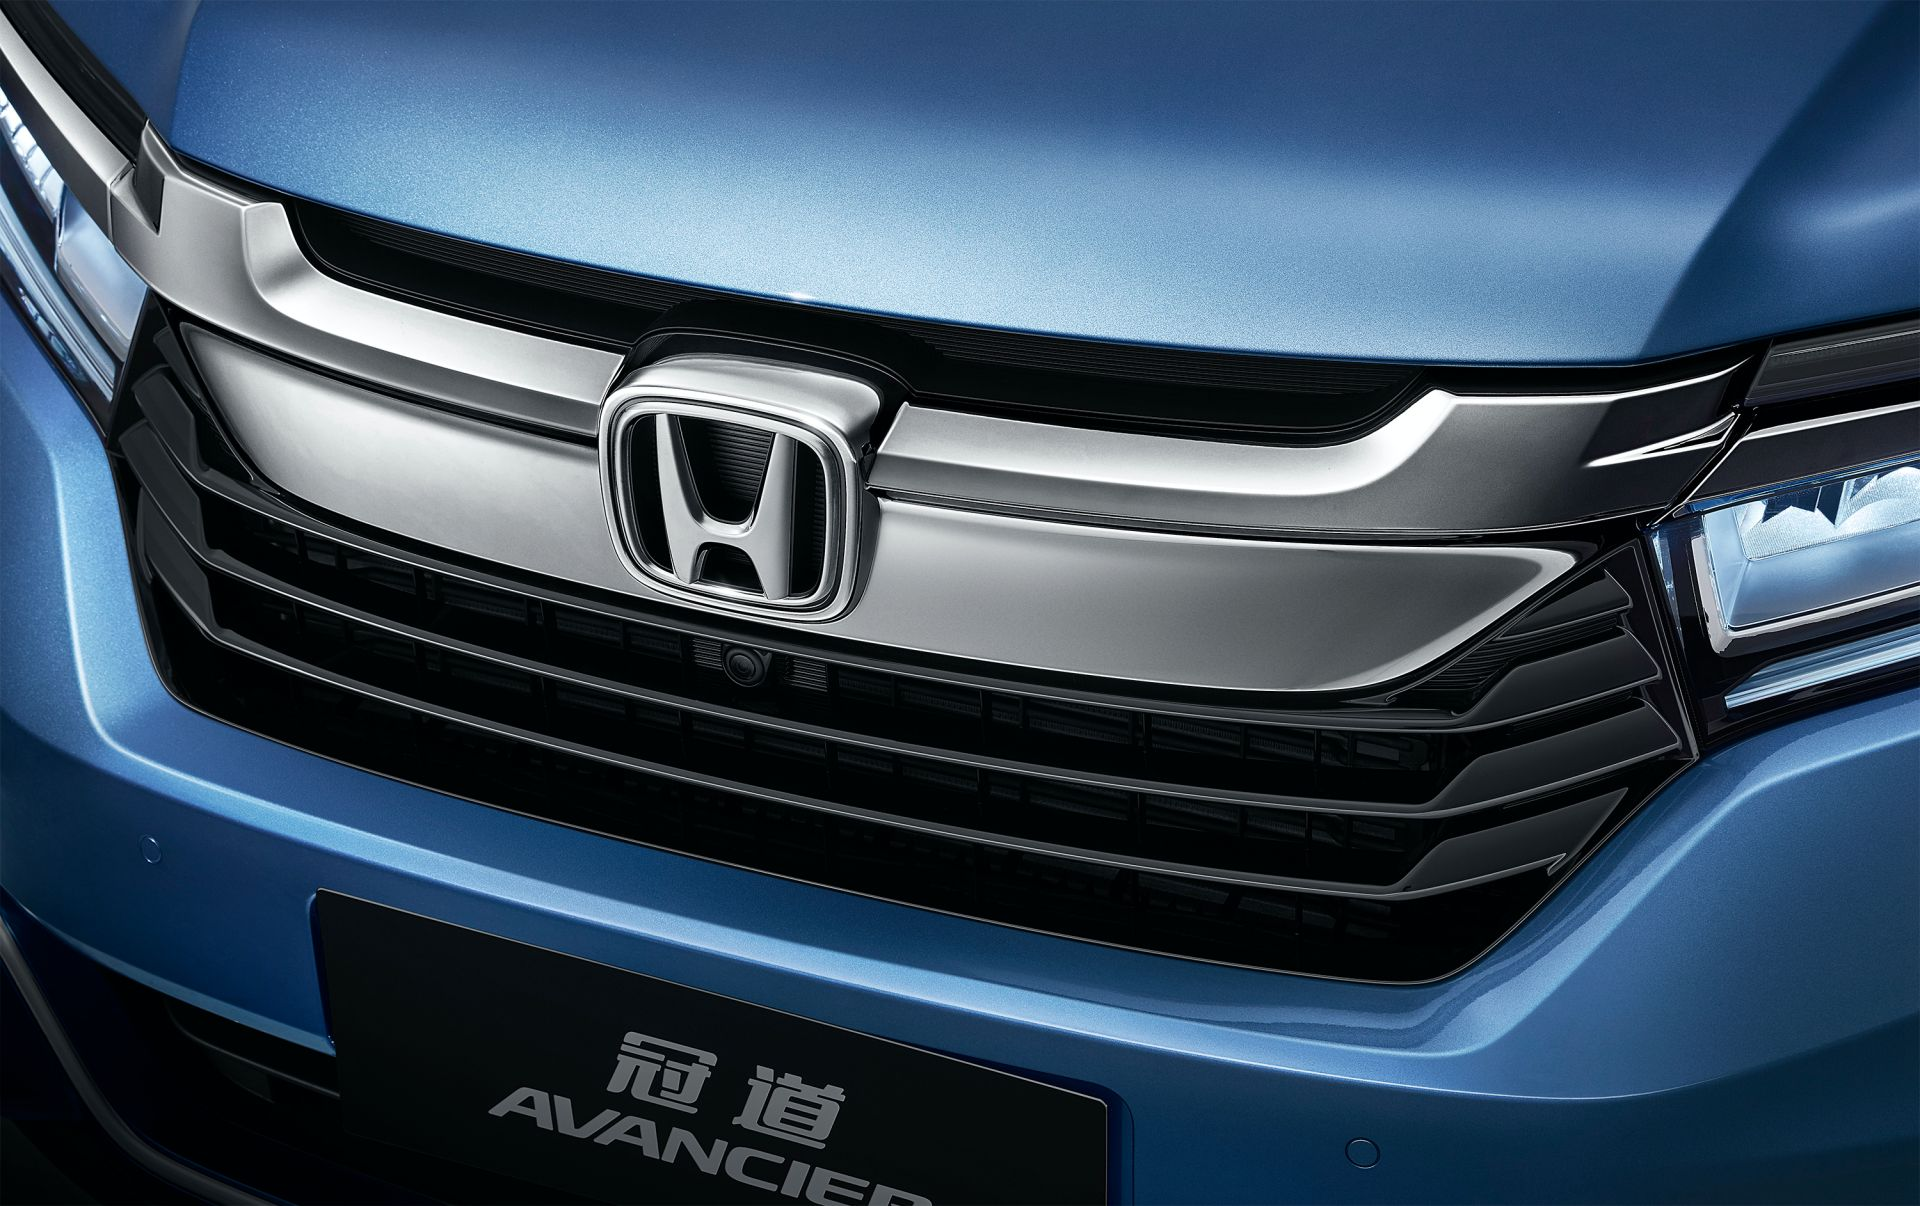 Honda-Avancier-facelift-2020-16